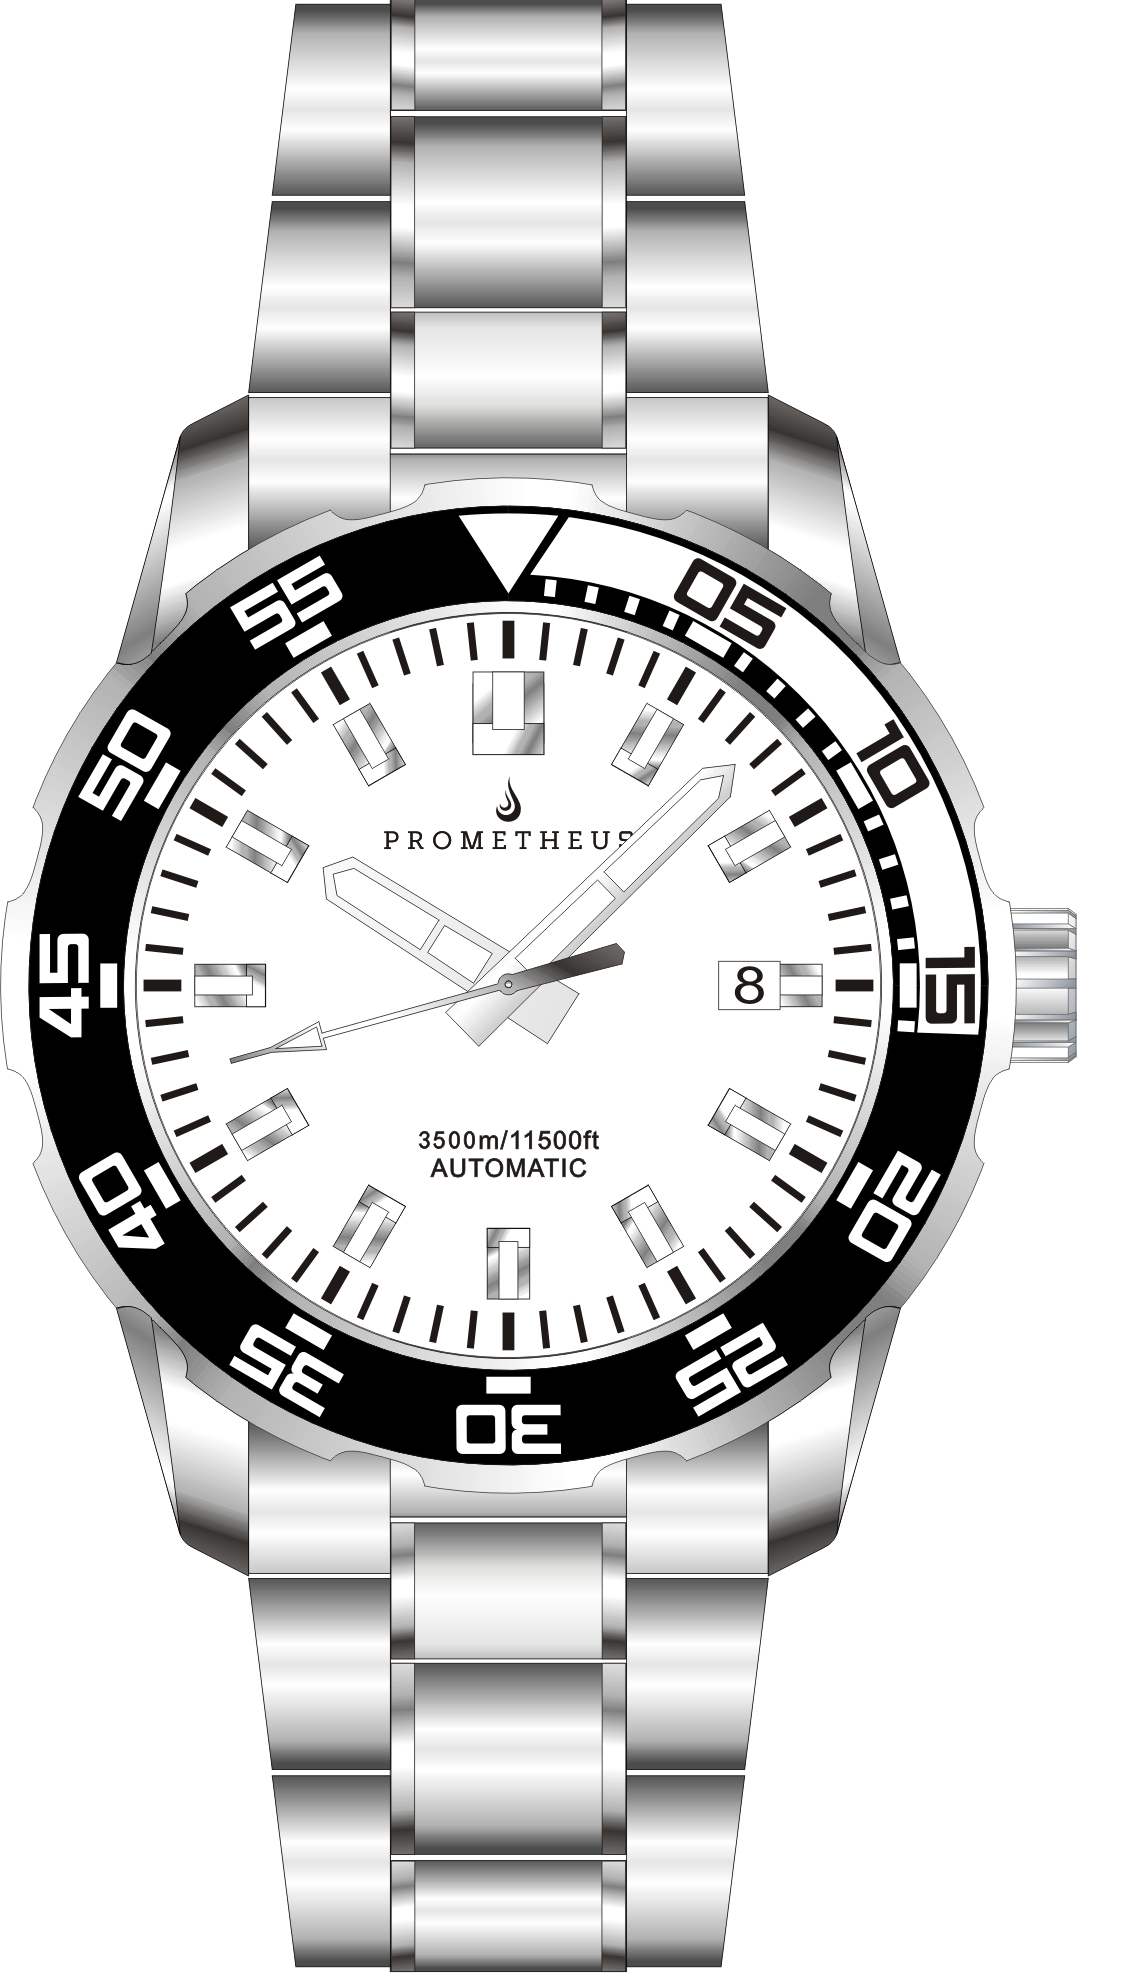 Pre-Order Prometheus Poseidon Stainless Steel White Bezel Lumed White Dial Pencil Hands 3500m Miyota 9015 Automatic Diver Watch PMTPWDPH